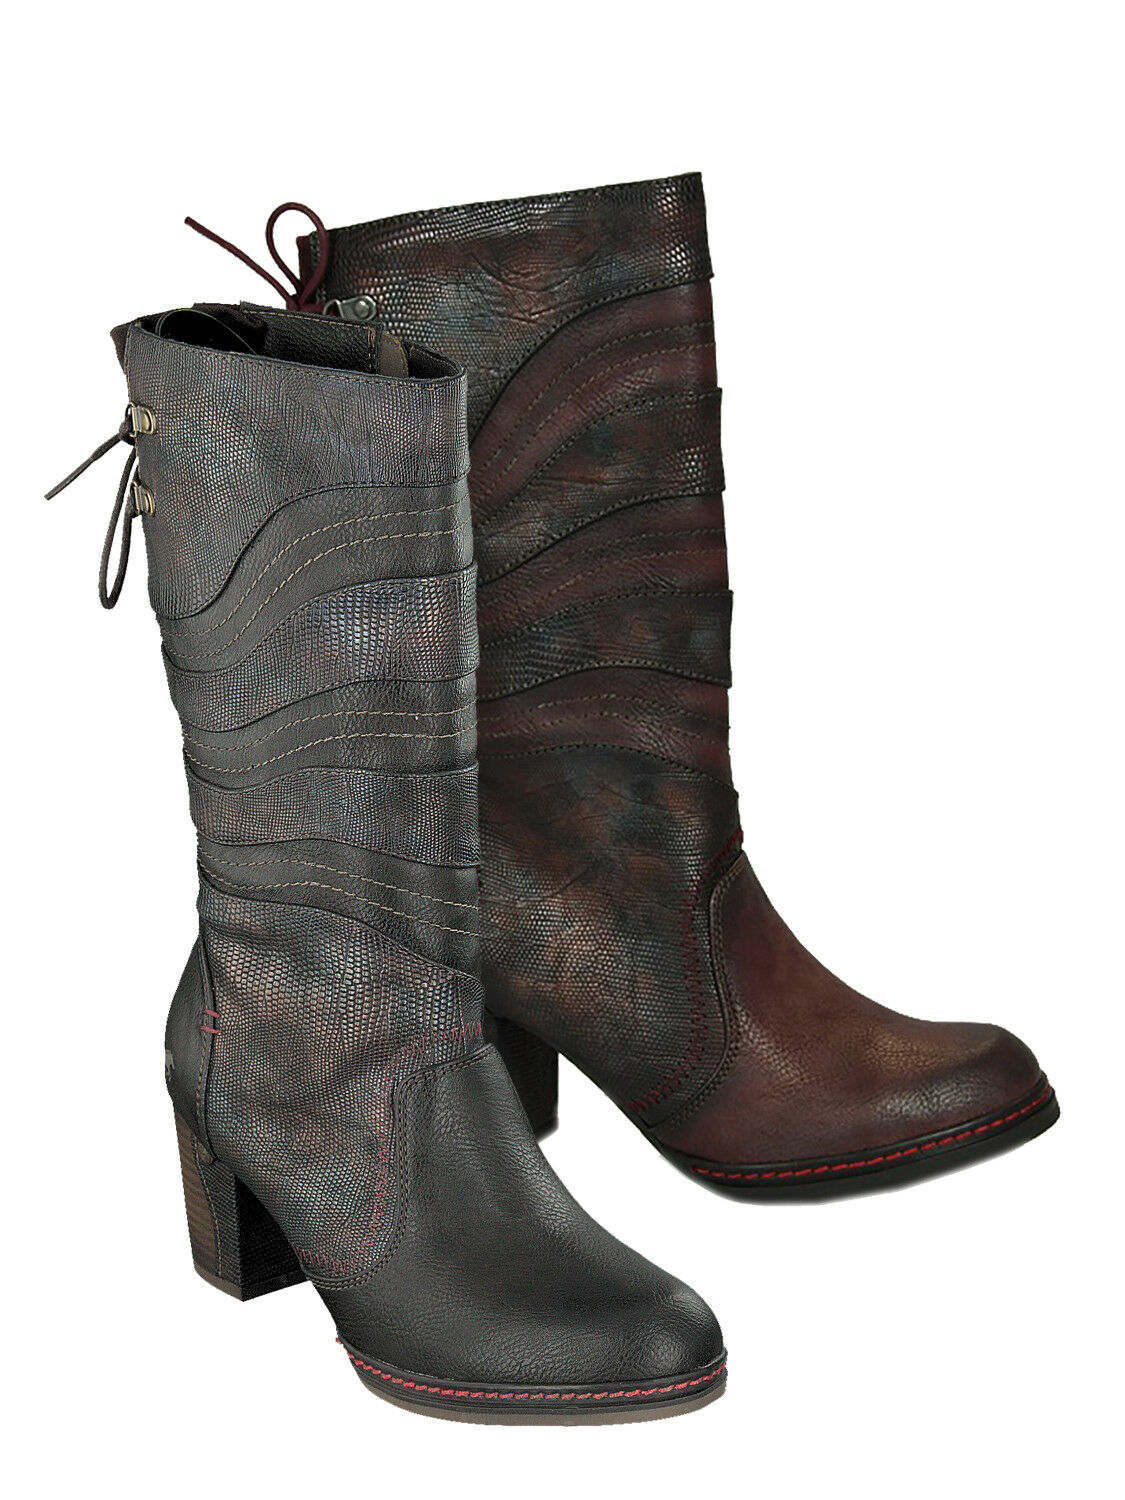 Mustang 1287-514 zapatos mujer Ankle botas